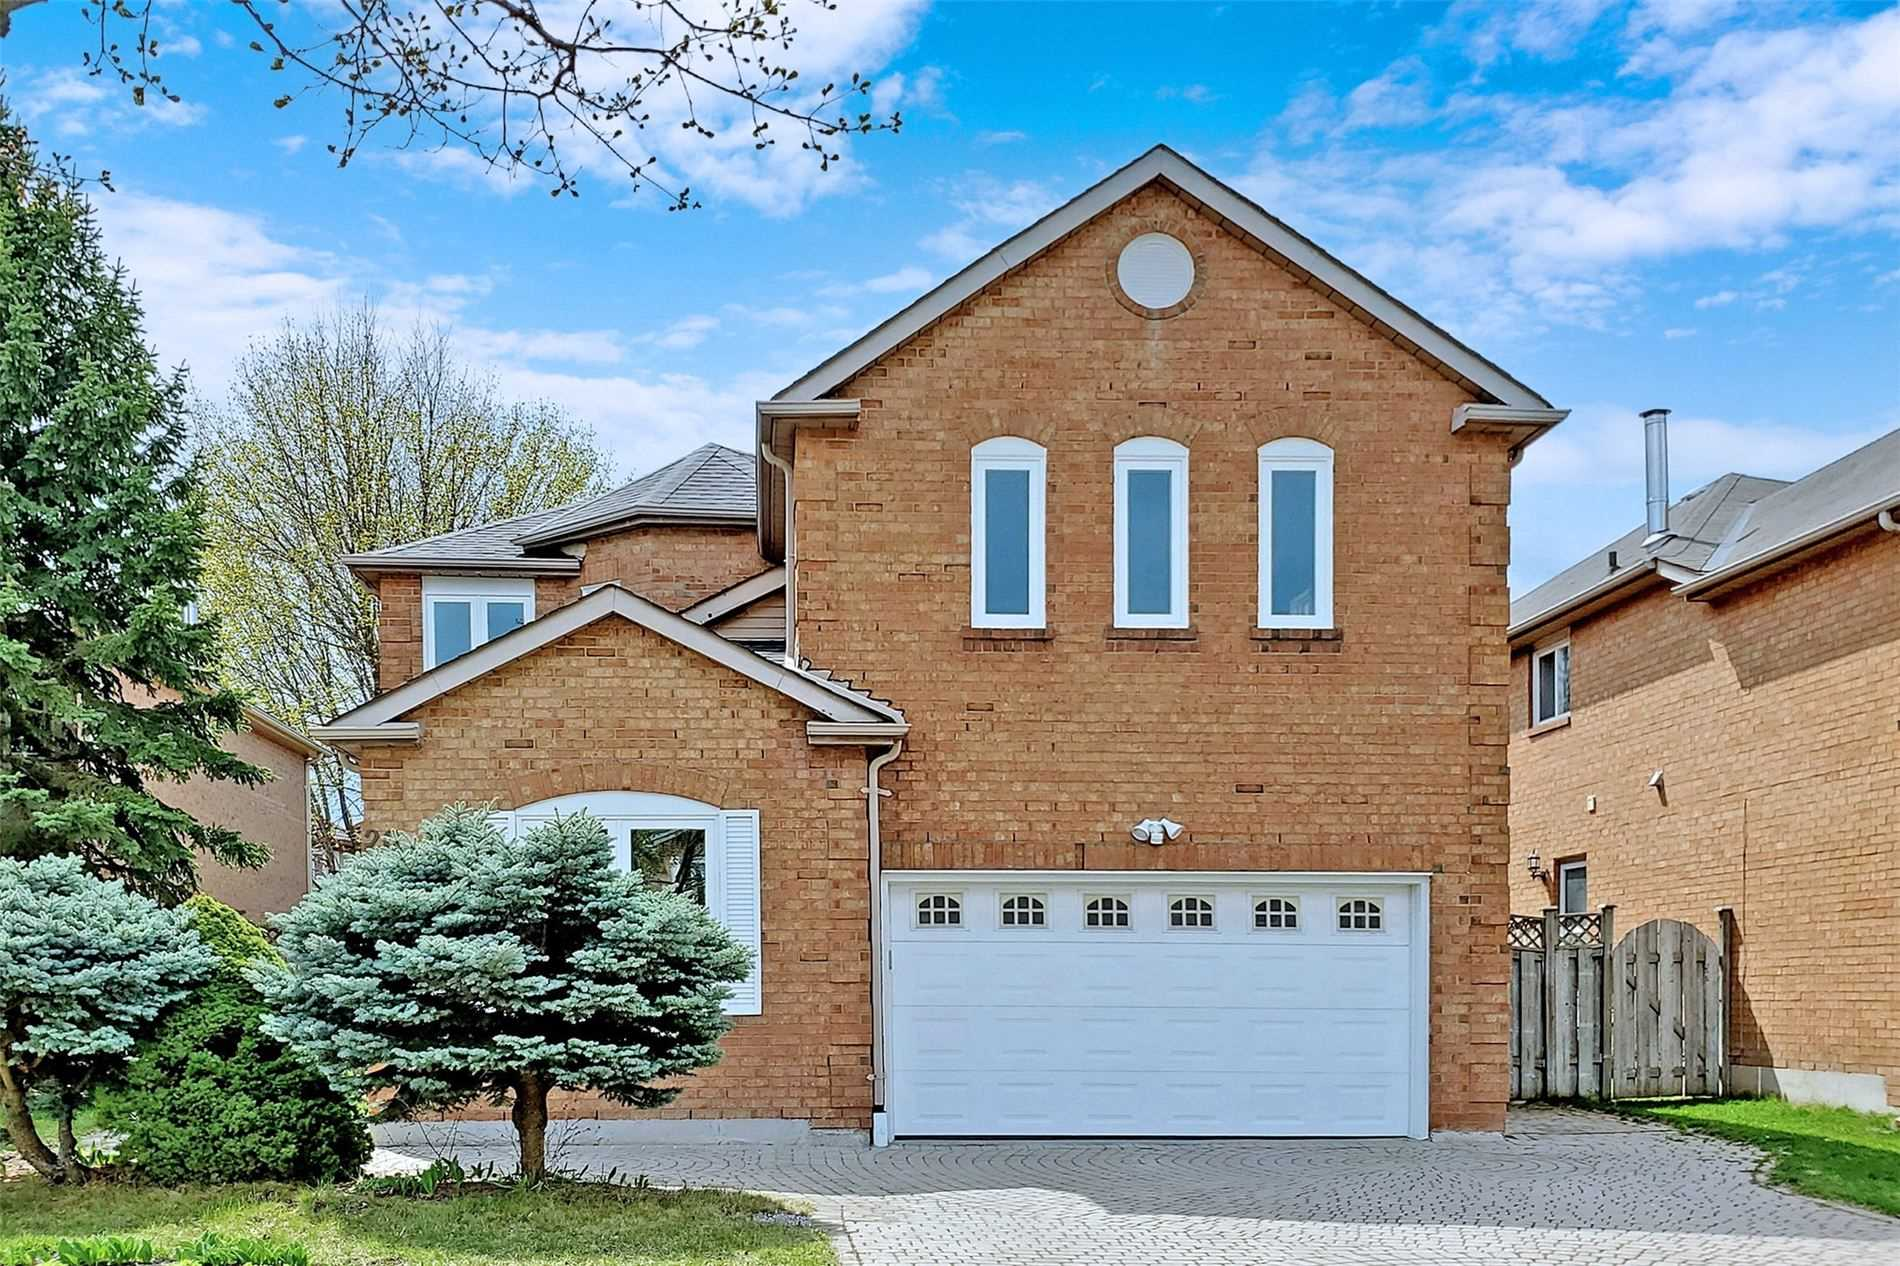 Detached house For Sale In Markham - 26 Corby Rd, Markham, Ontario, Canada L3R 8M8 , 4 Bedrooms Bedrooms, ,3 BathroomsBathrooms,Detached,For Sale,Corby